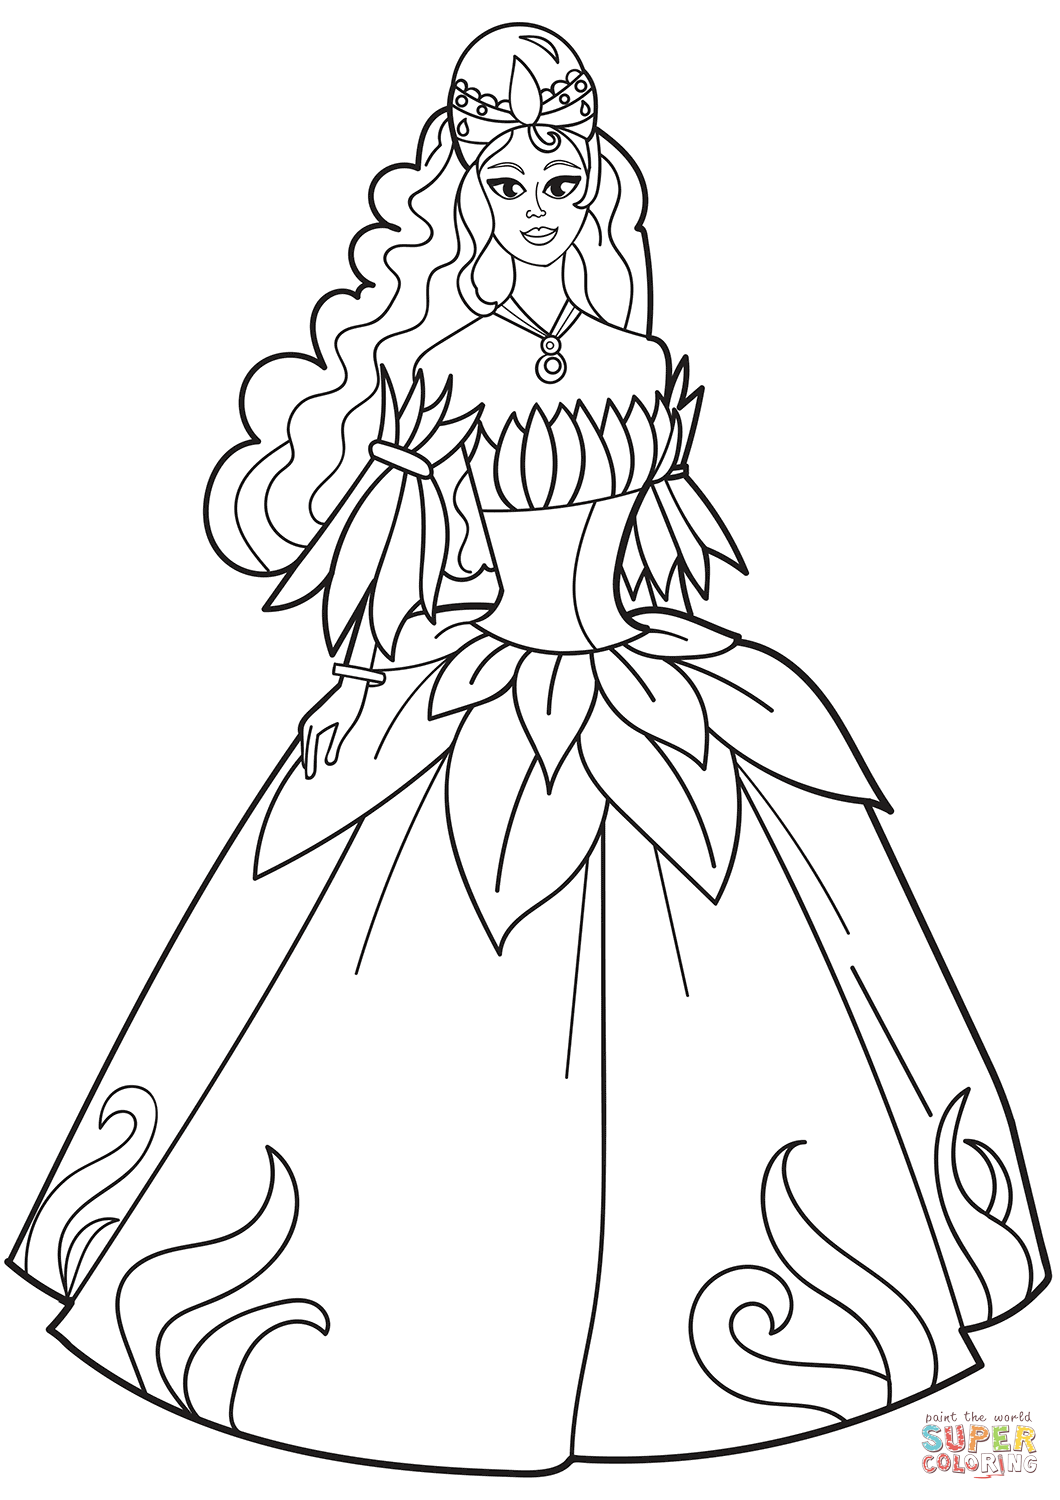 coloring princess dress princess in ball gown off the shoulder dress coloring dress princess coloring